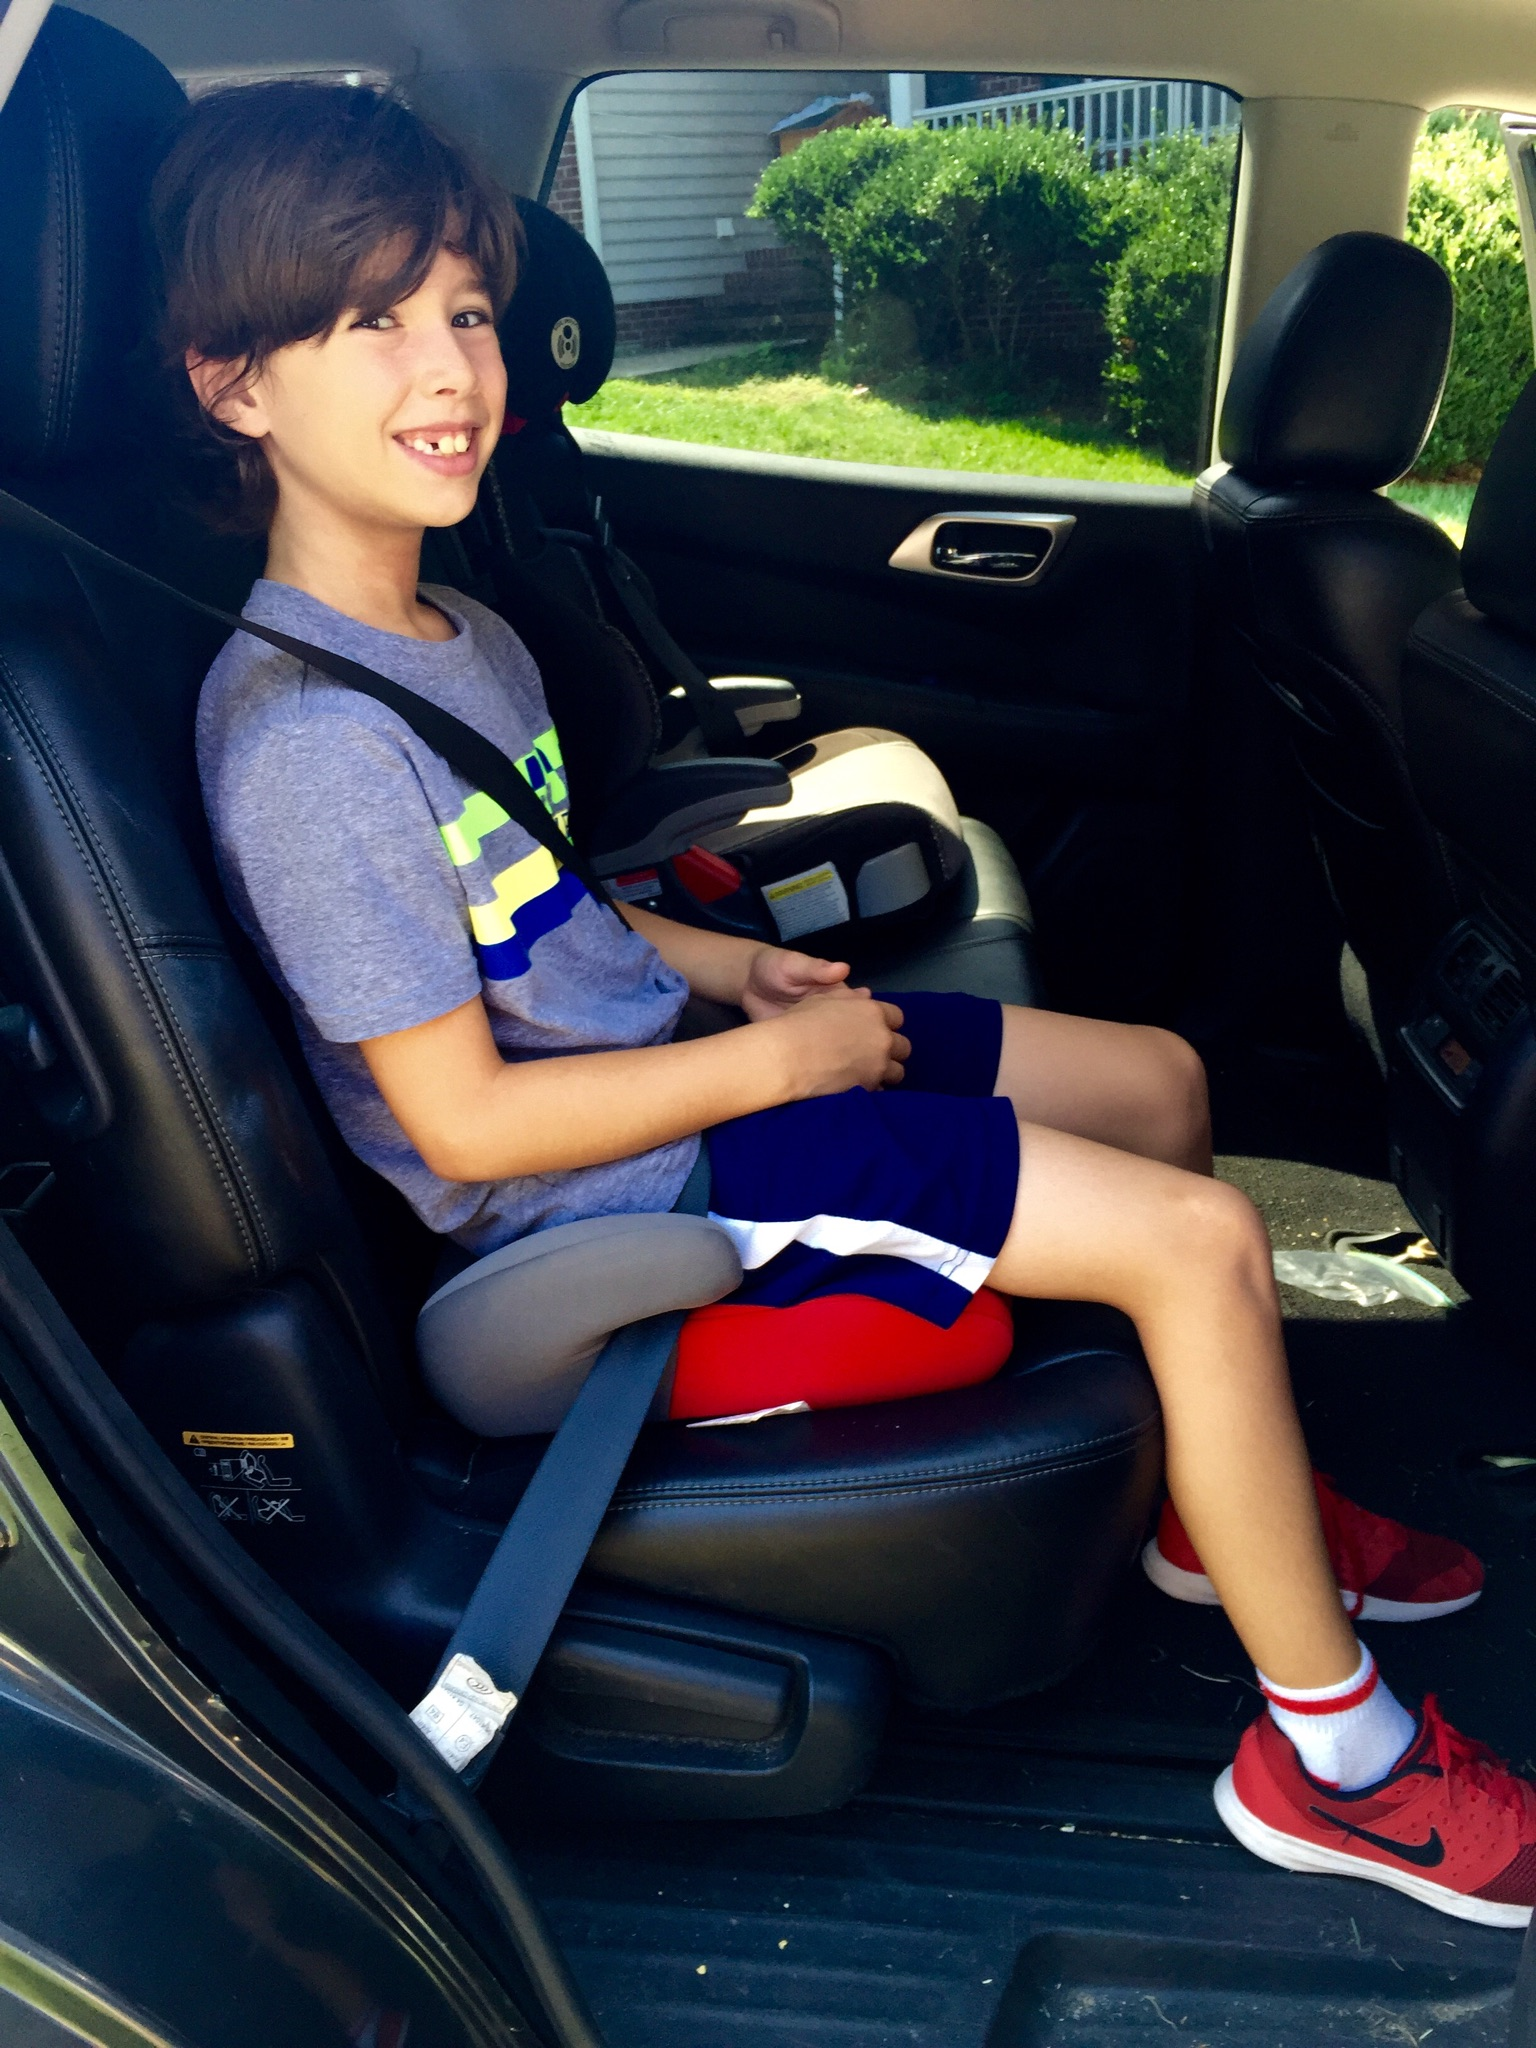 Boy In Booster Seat